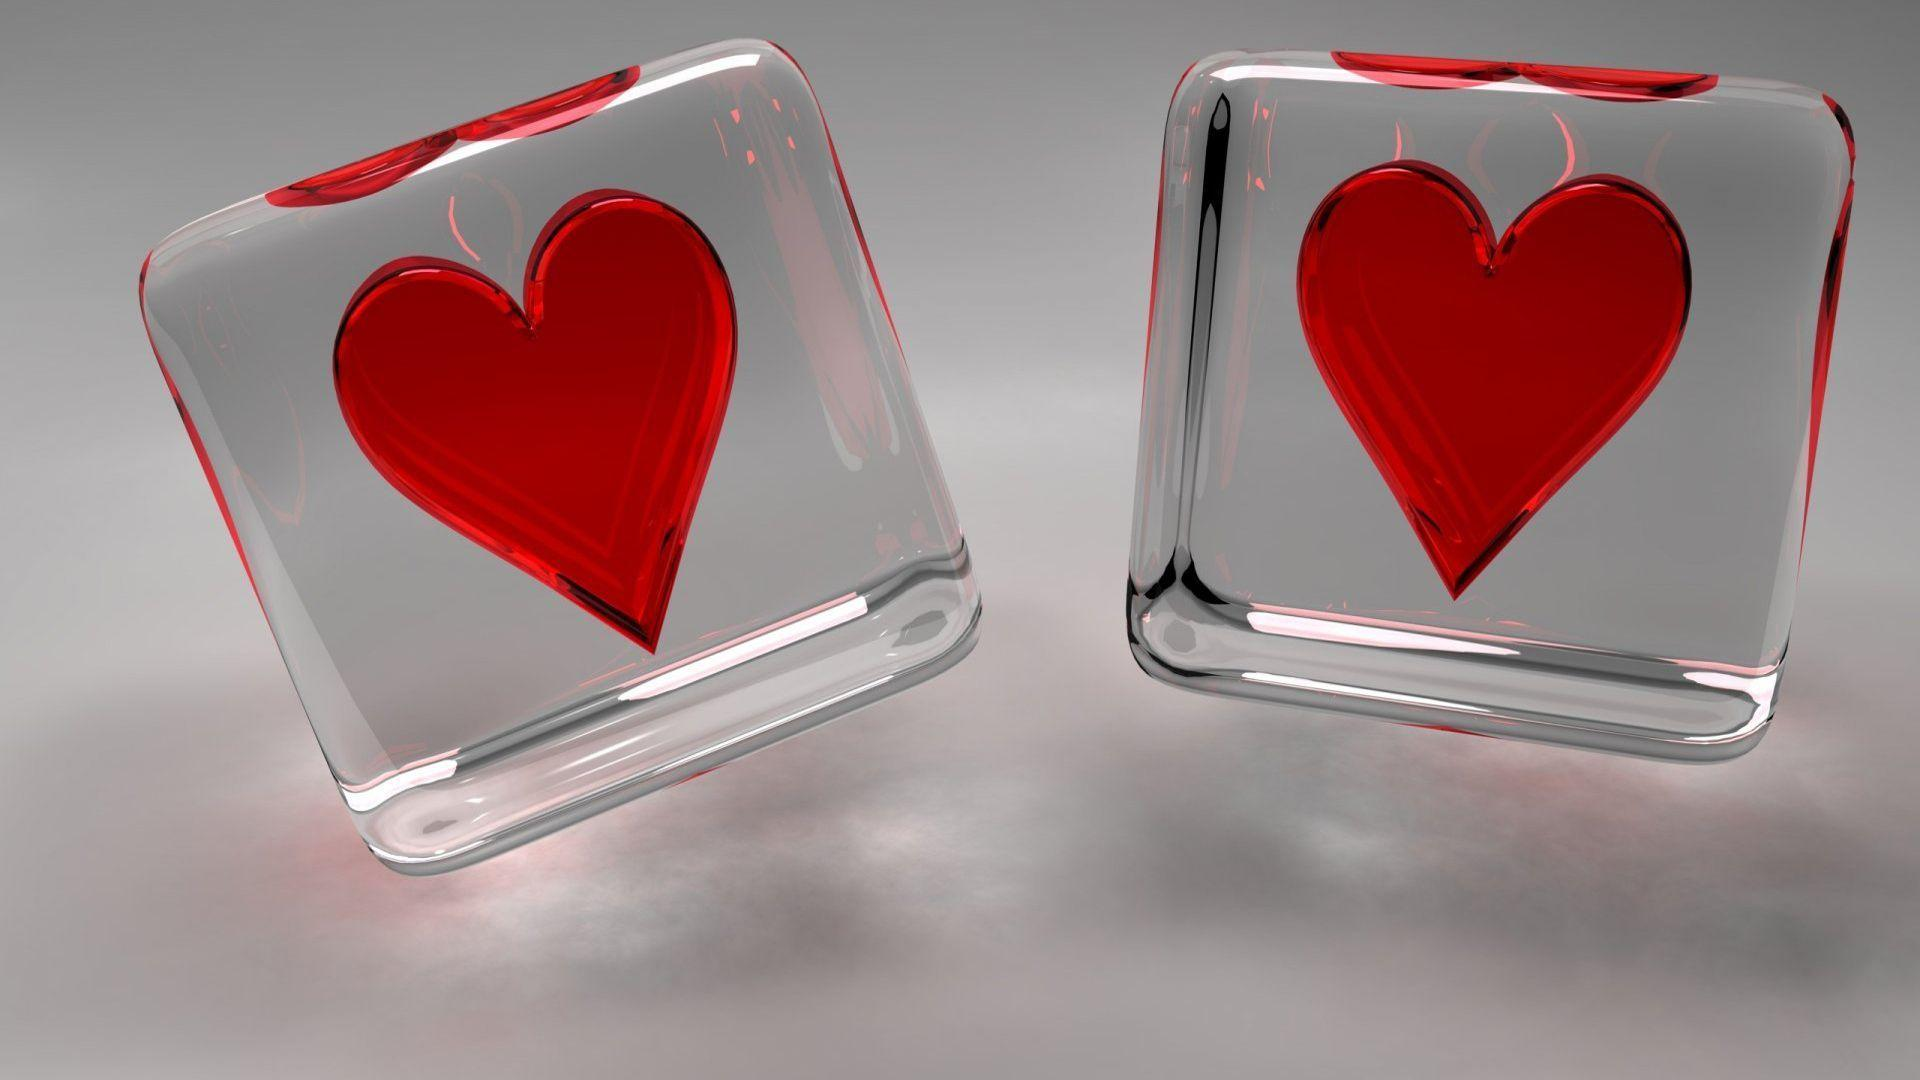 two loving heart love hd wallpaper Desktop Backgrounds Free